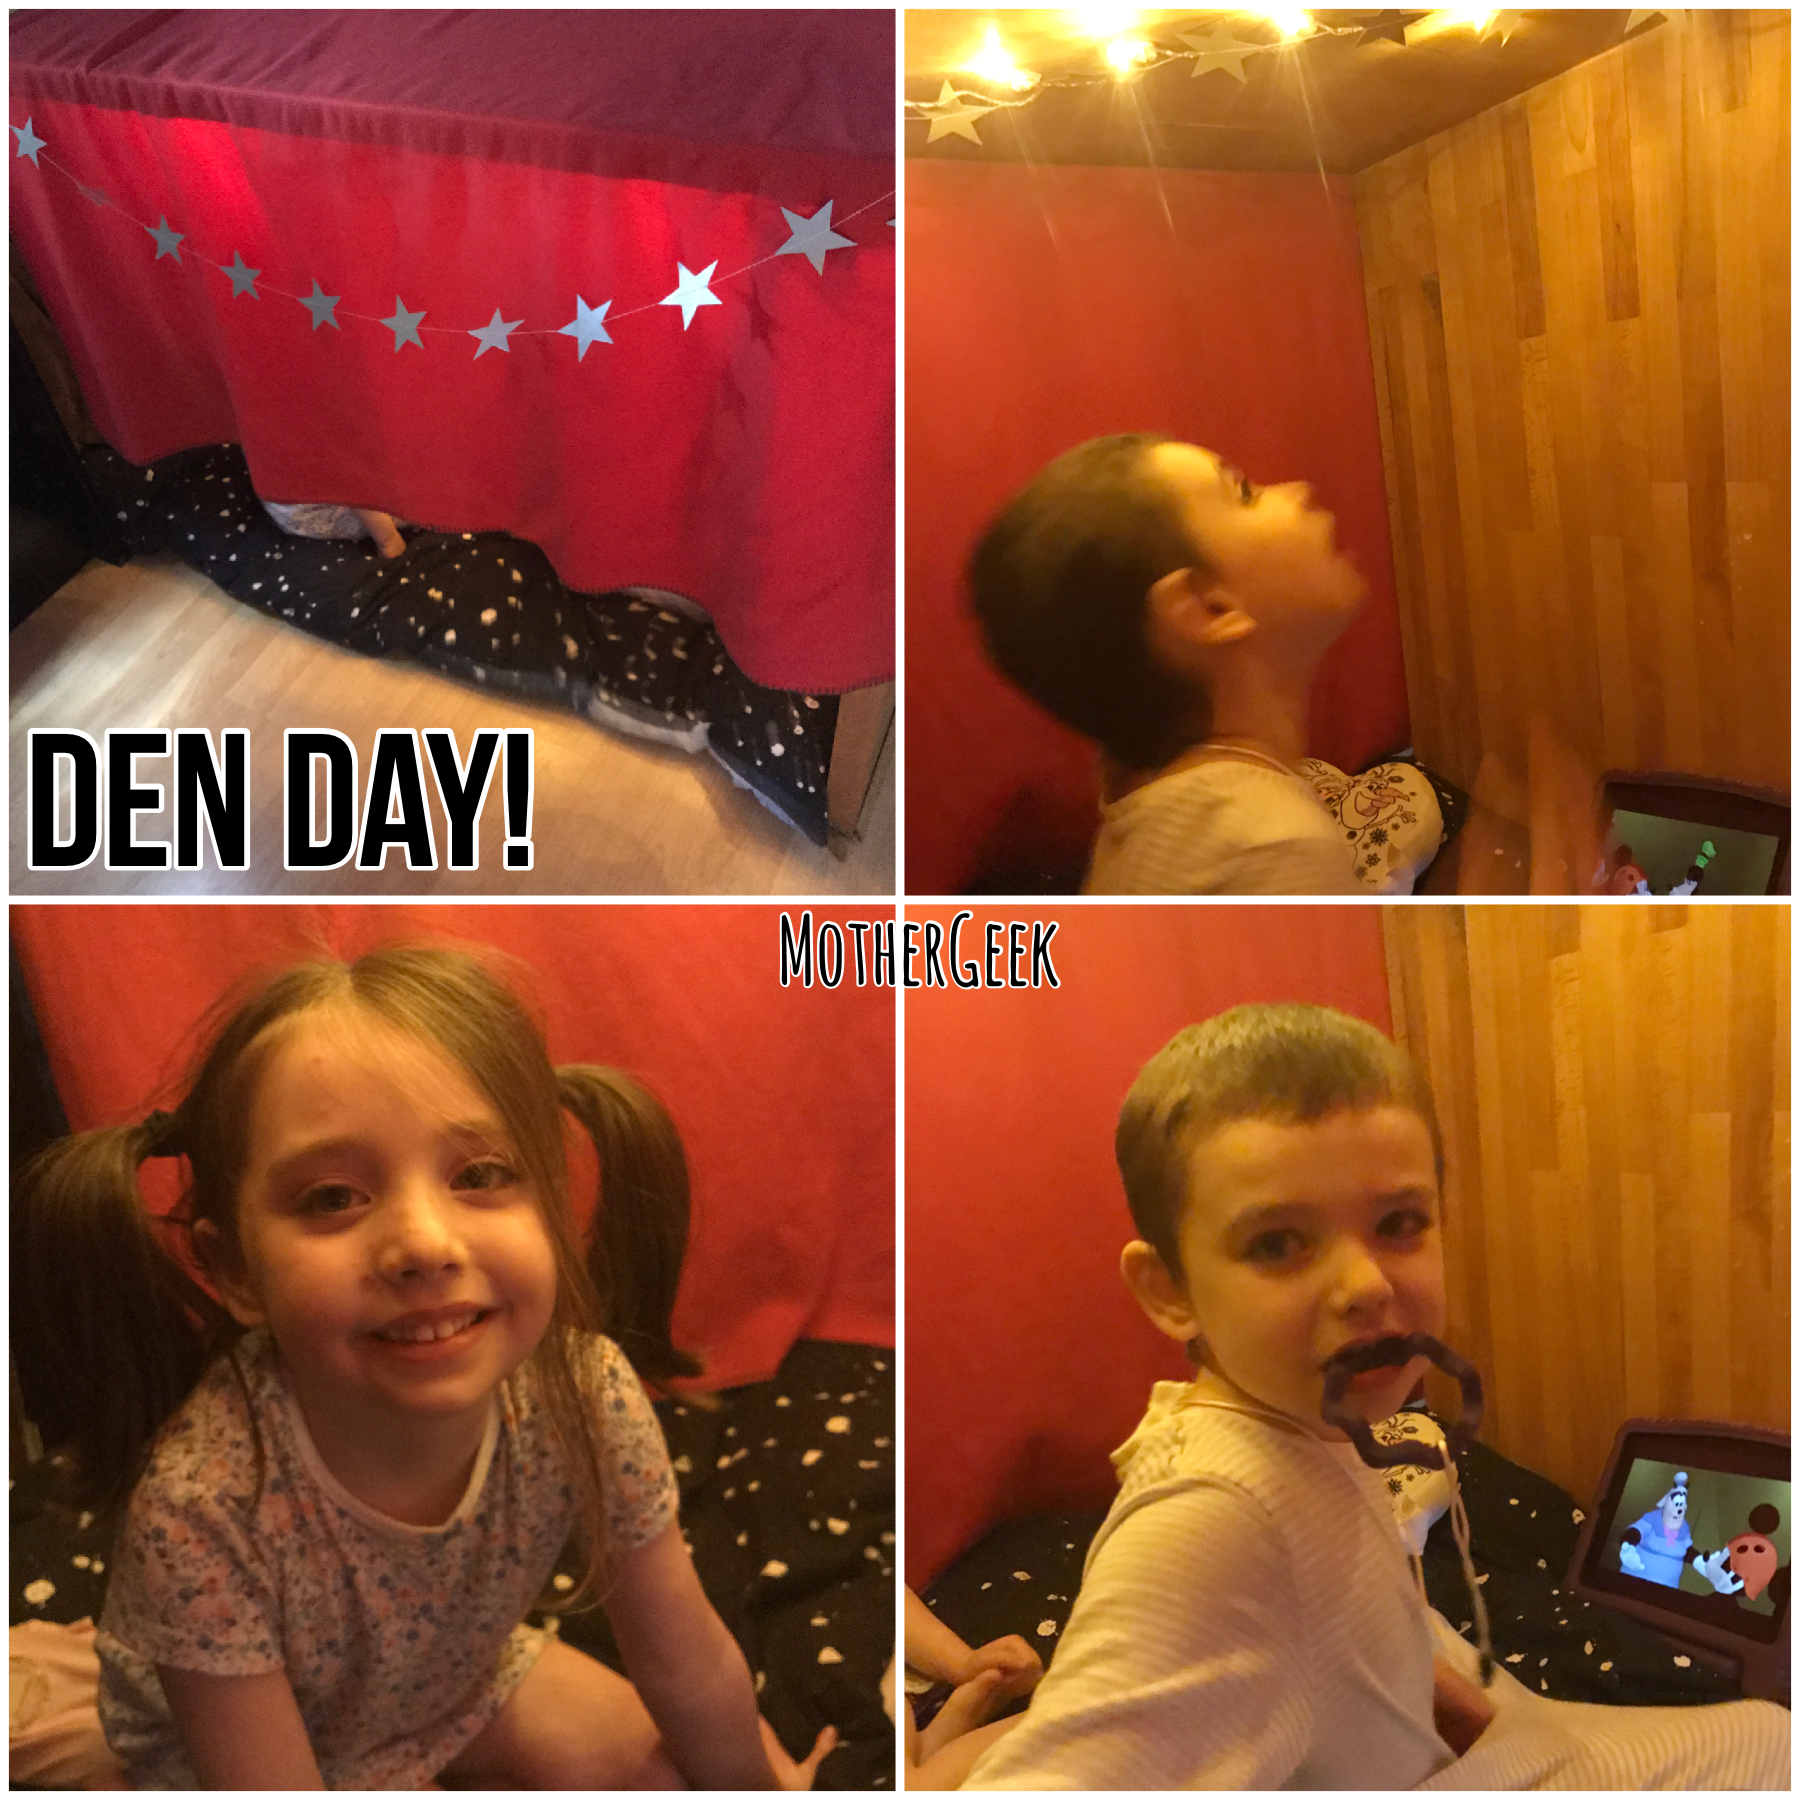 free ideas for Summer fun - make a den